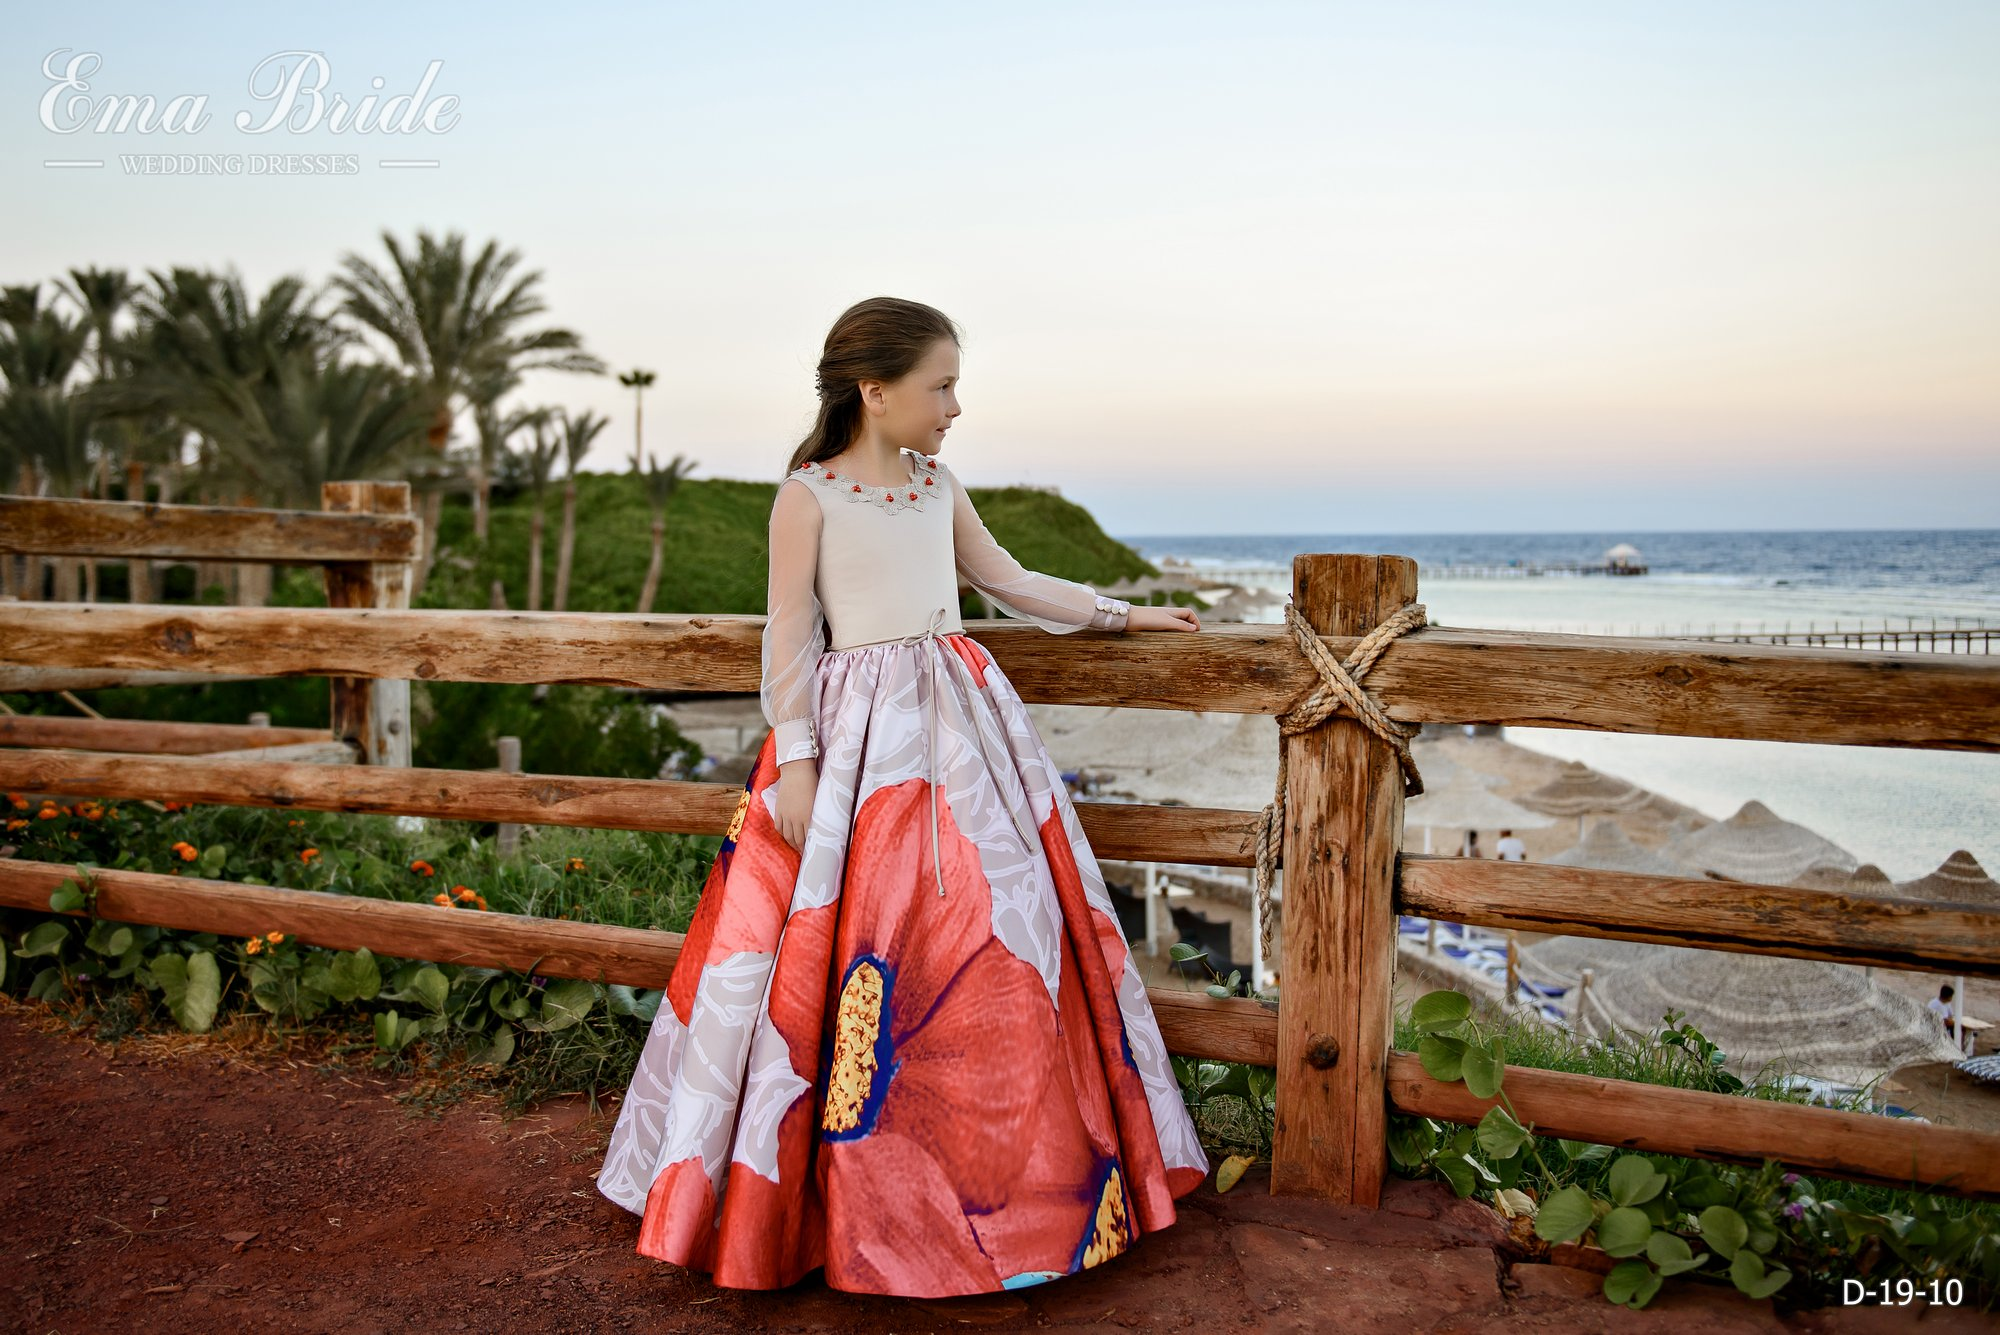 Children's dress by EmaBride D-19-10 2019-2